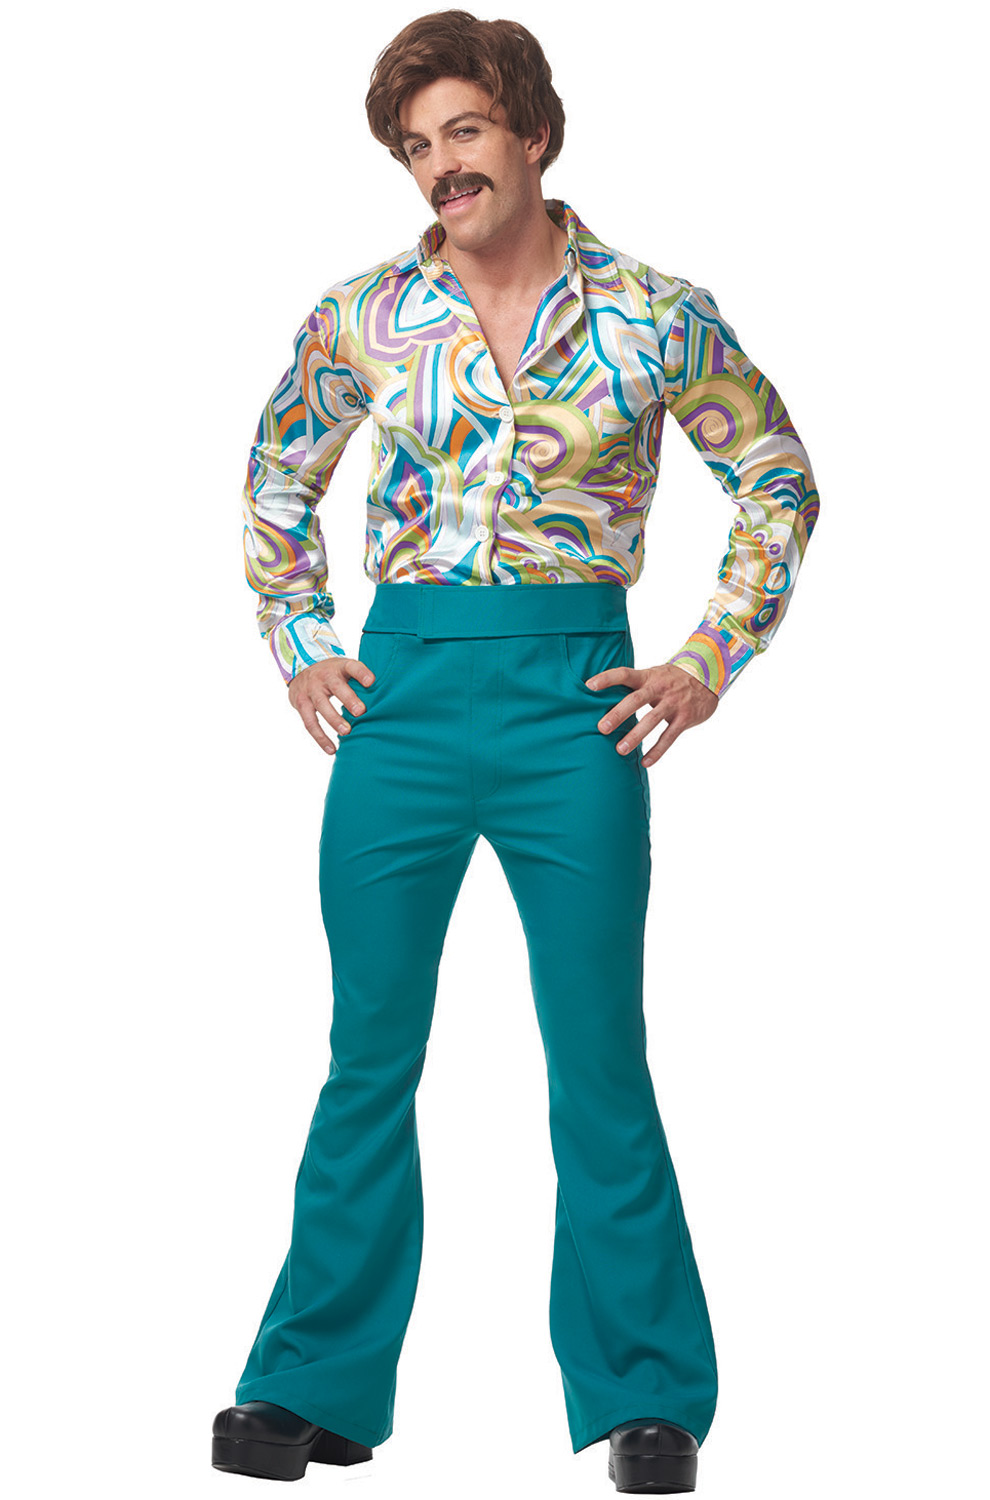 70 39 S Dude Adult Costume Green